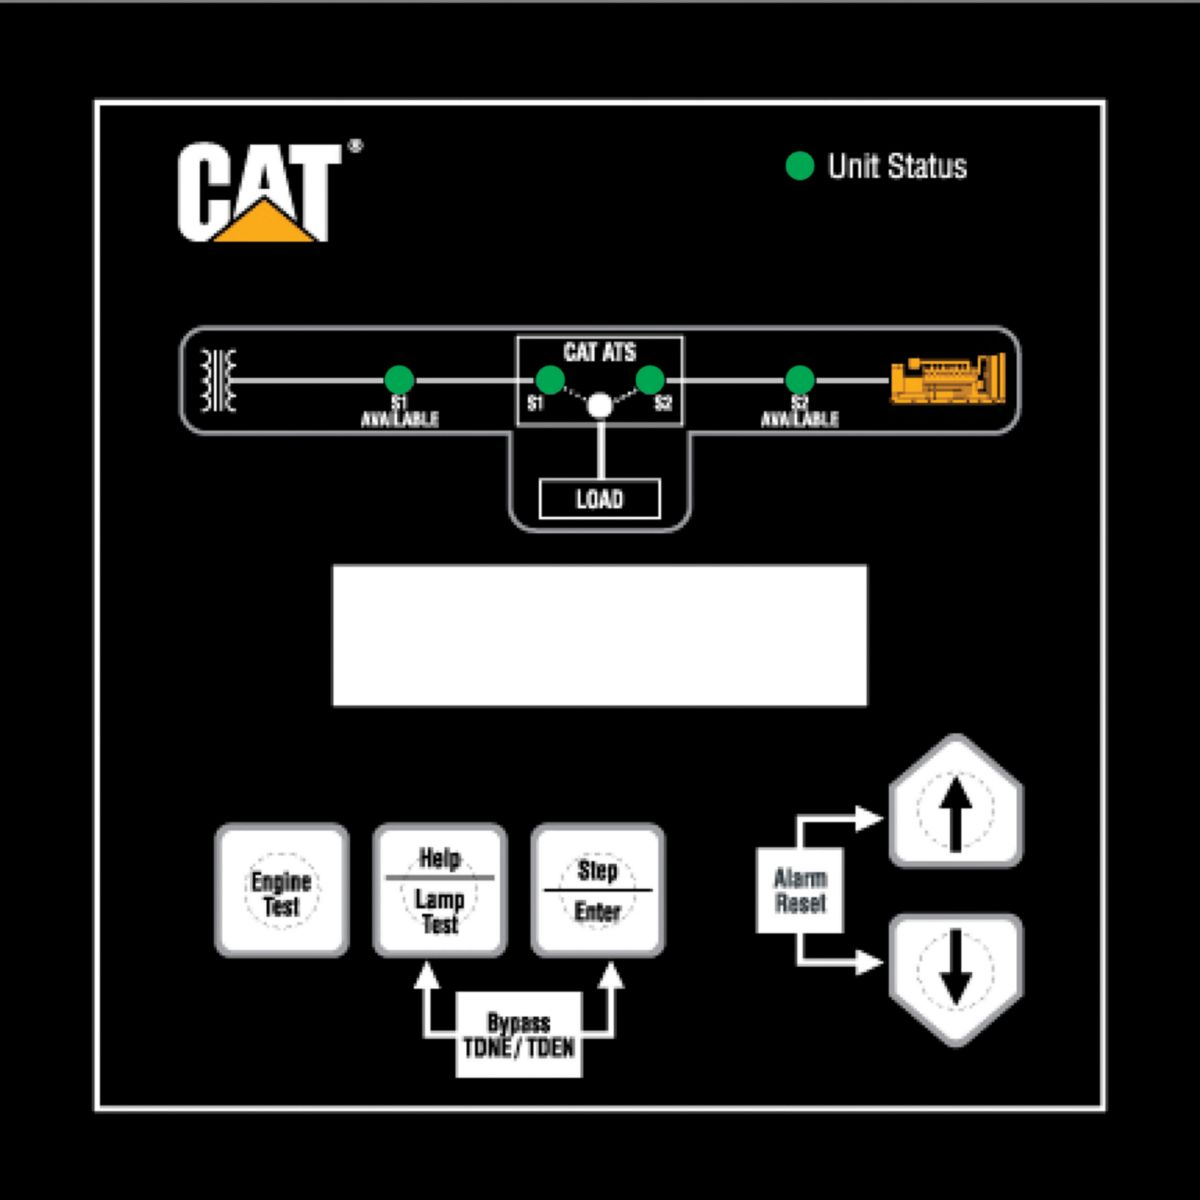 Electric Power Generation Cat 3512b Engine Wiring Diagram